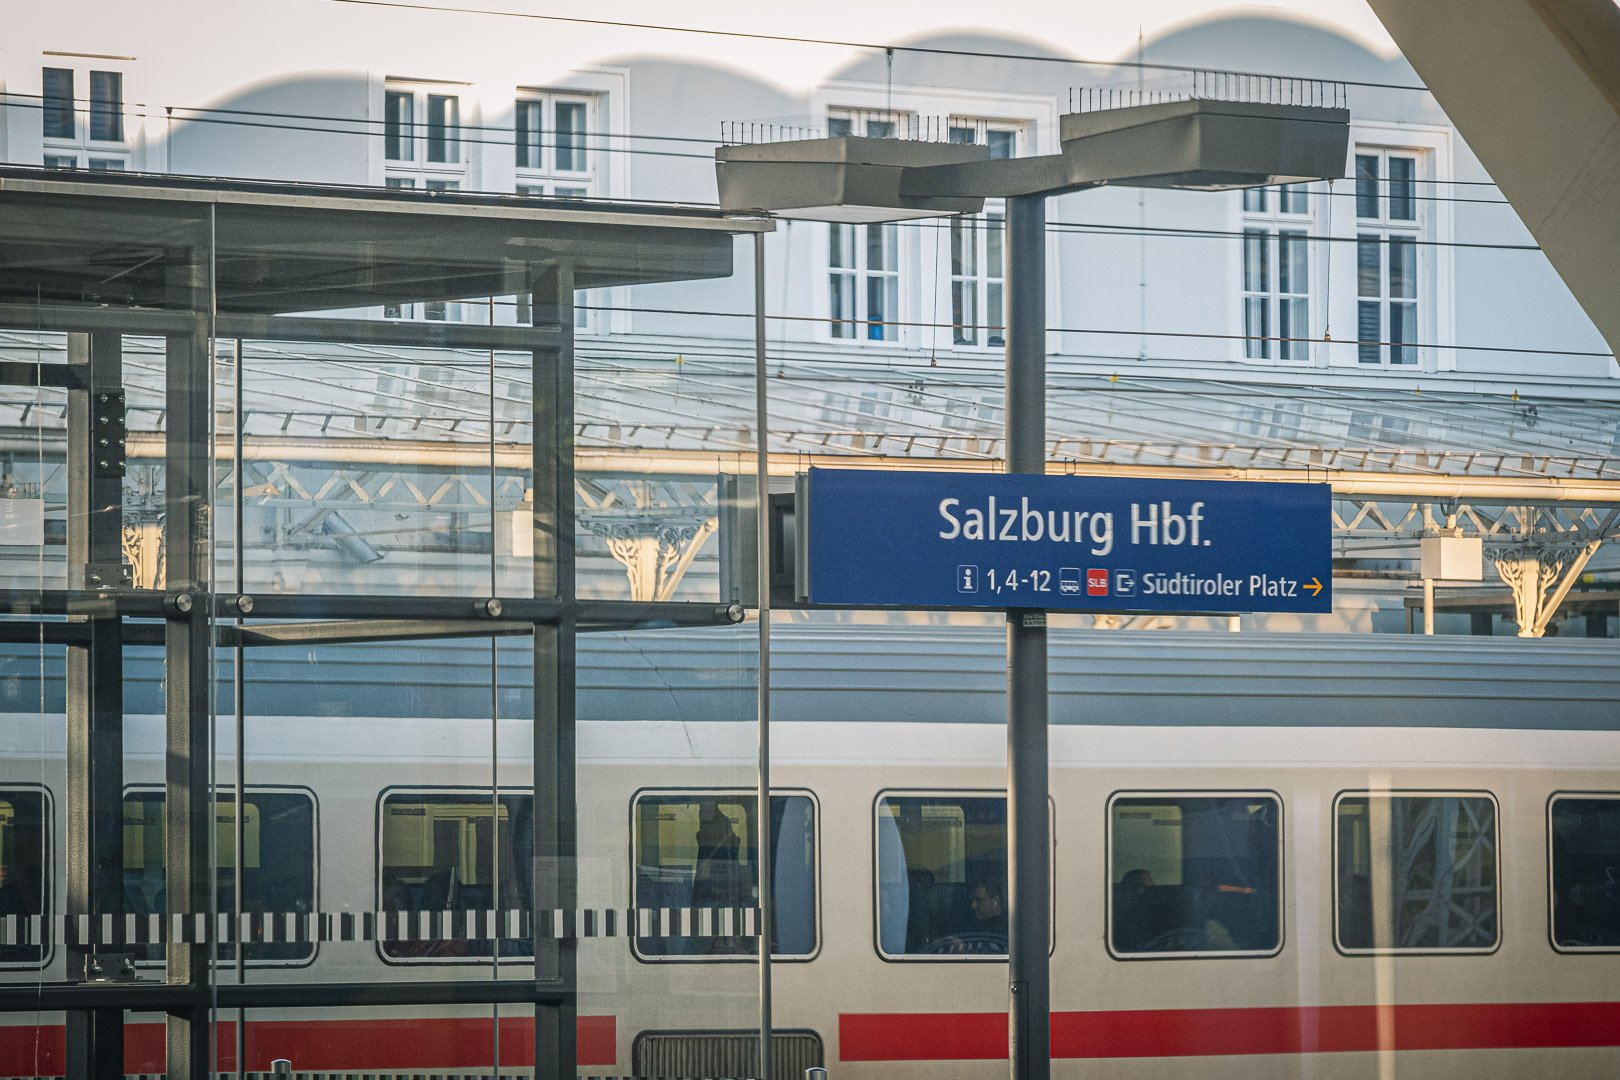 The main train station in Salzburg